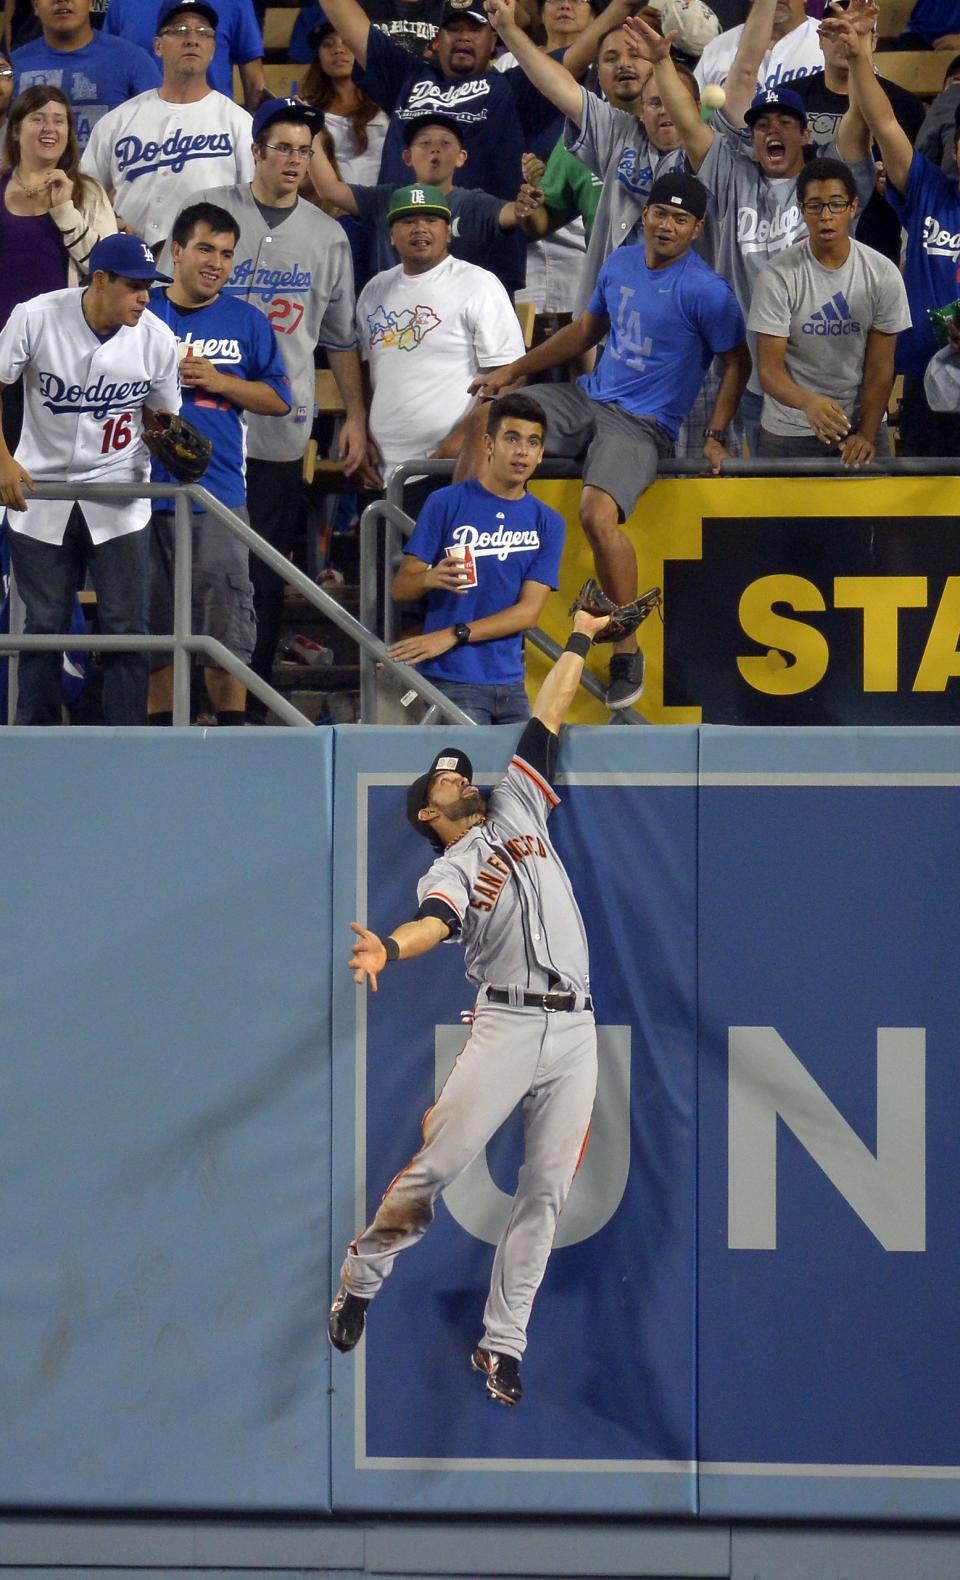 San Francisco Giants center fielder Angel Pagan can't reach a ball hit for a two-run home run by Los Angeles Dodgers' A.J. Ellis during the seventh inning of their baseball game, Tuesday, Oct. 2, 2012, in Los Angeles. (AP Photo/Mark J. Terrill)